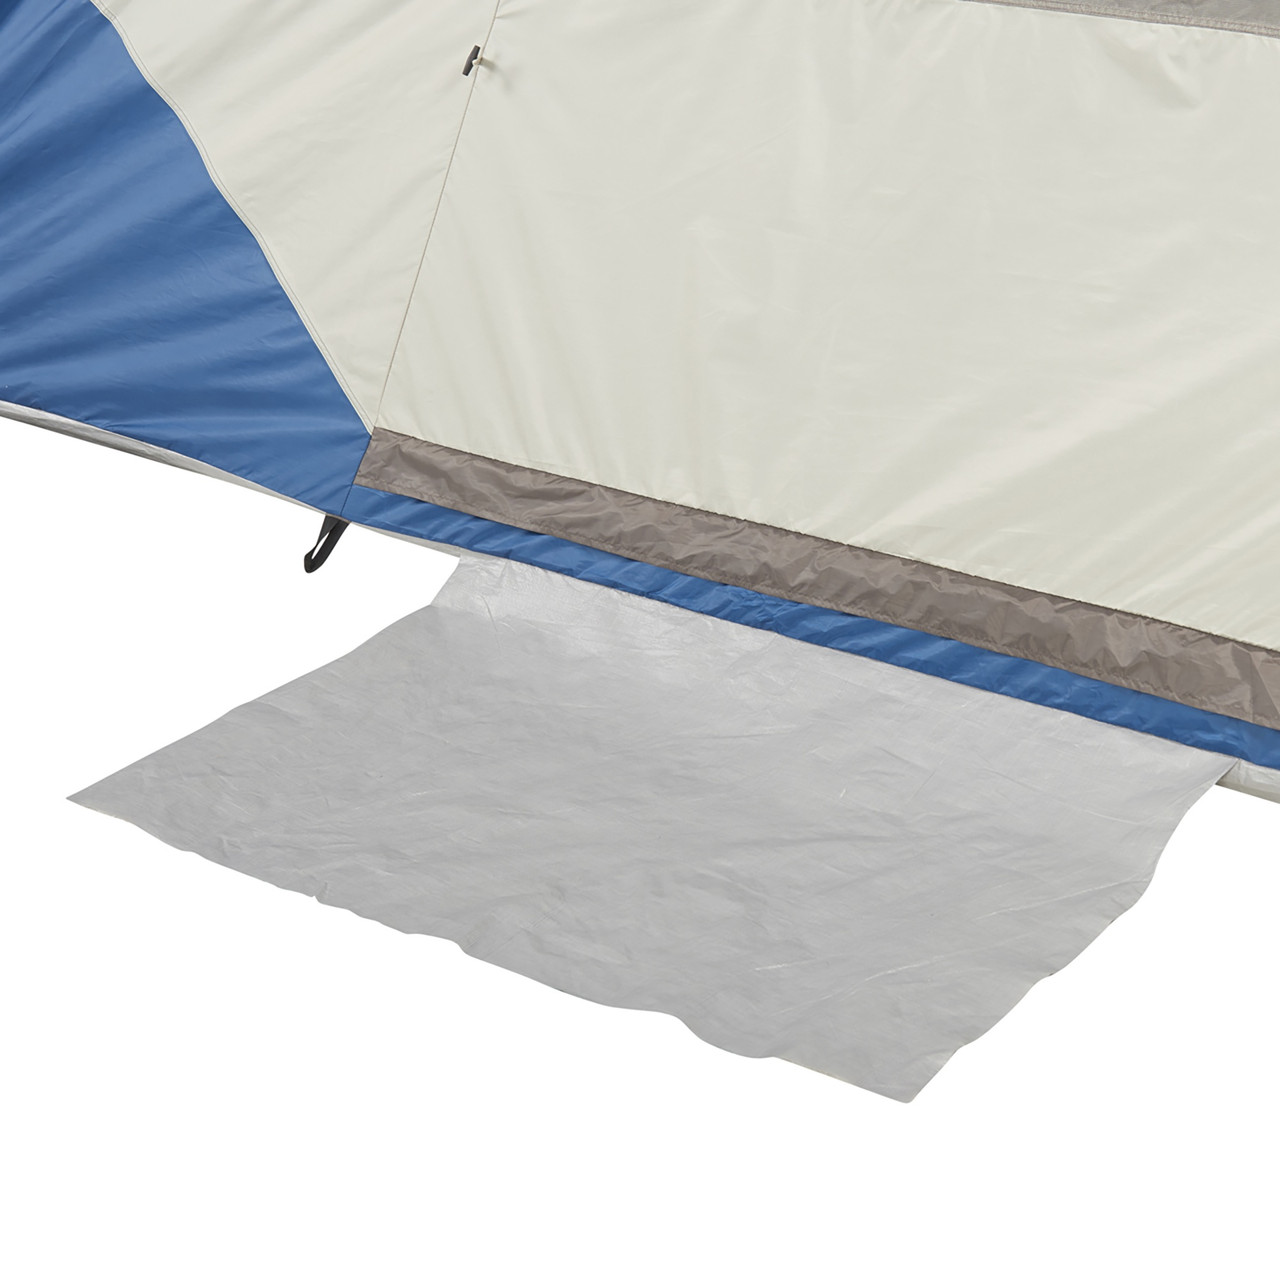 Close up of Wenzel Tamarack 6 Person Dome Tent, showing floor mat